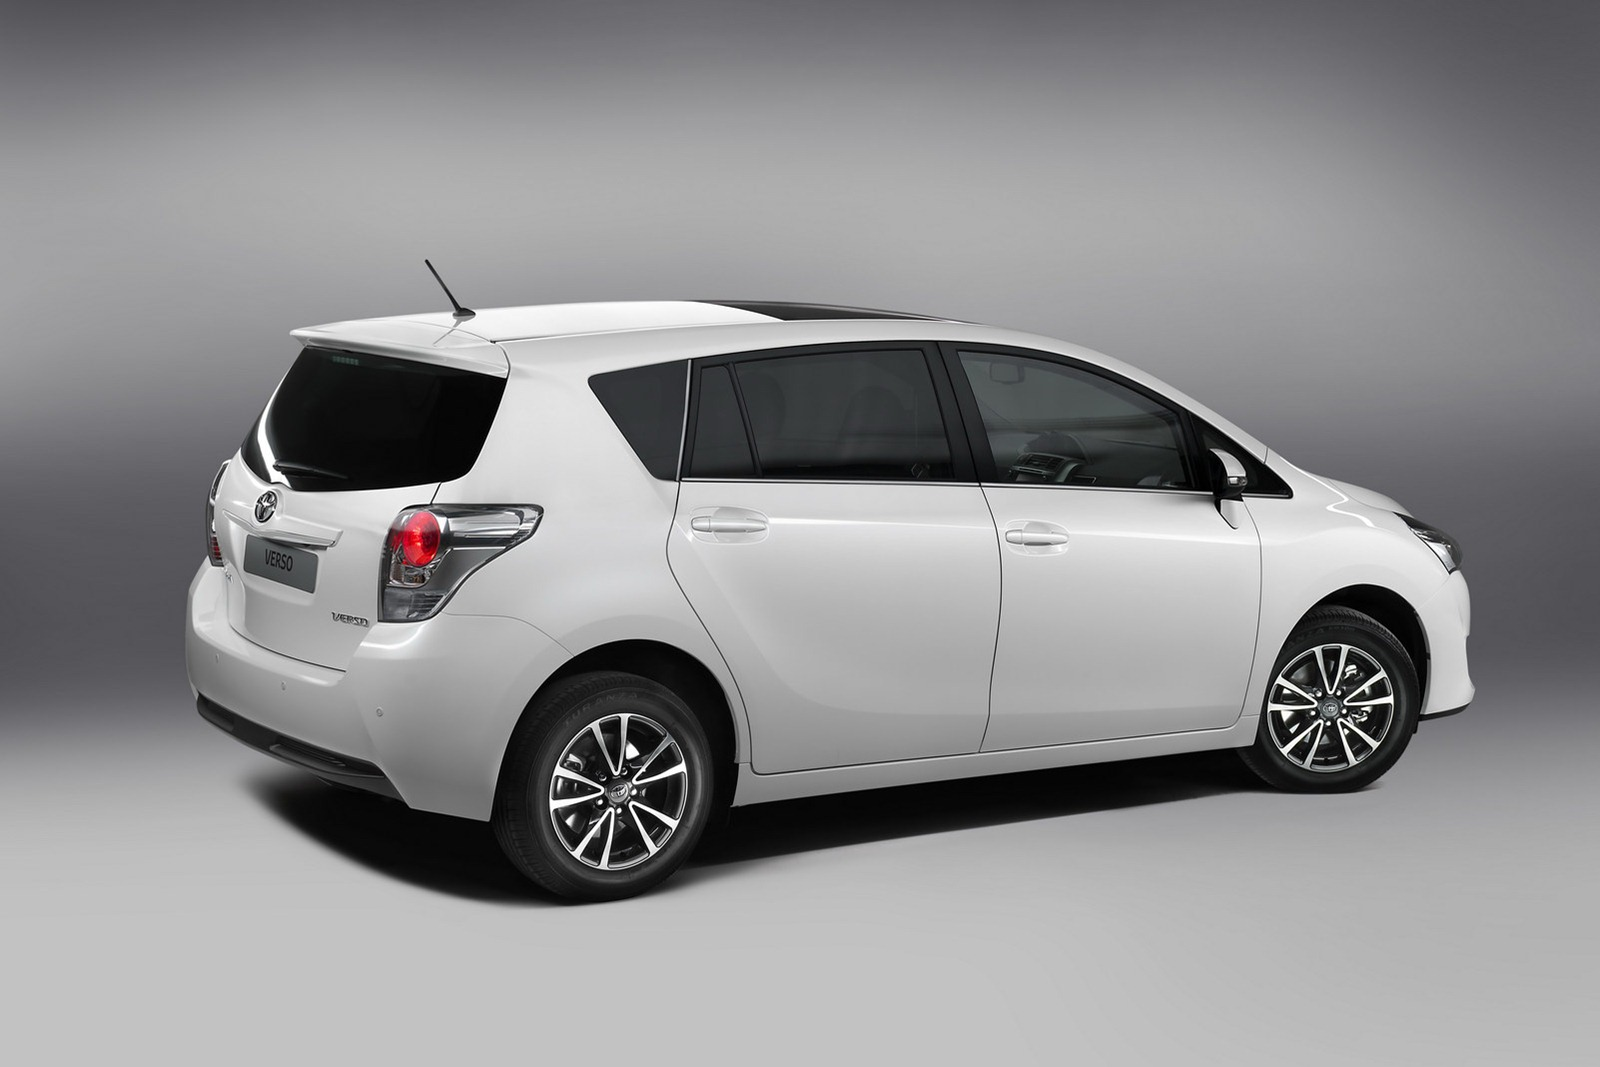 2013 toyota verso mpv gets a facelift autoevolution. Black Bedroom Furniture Sets. Home Design Ideas